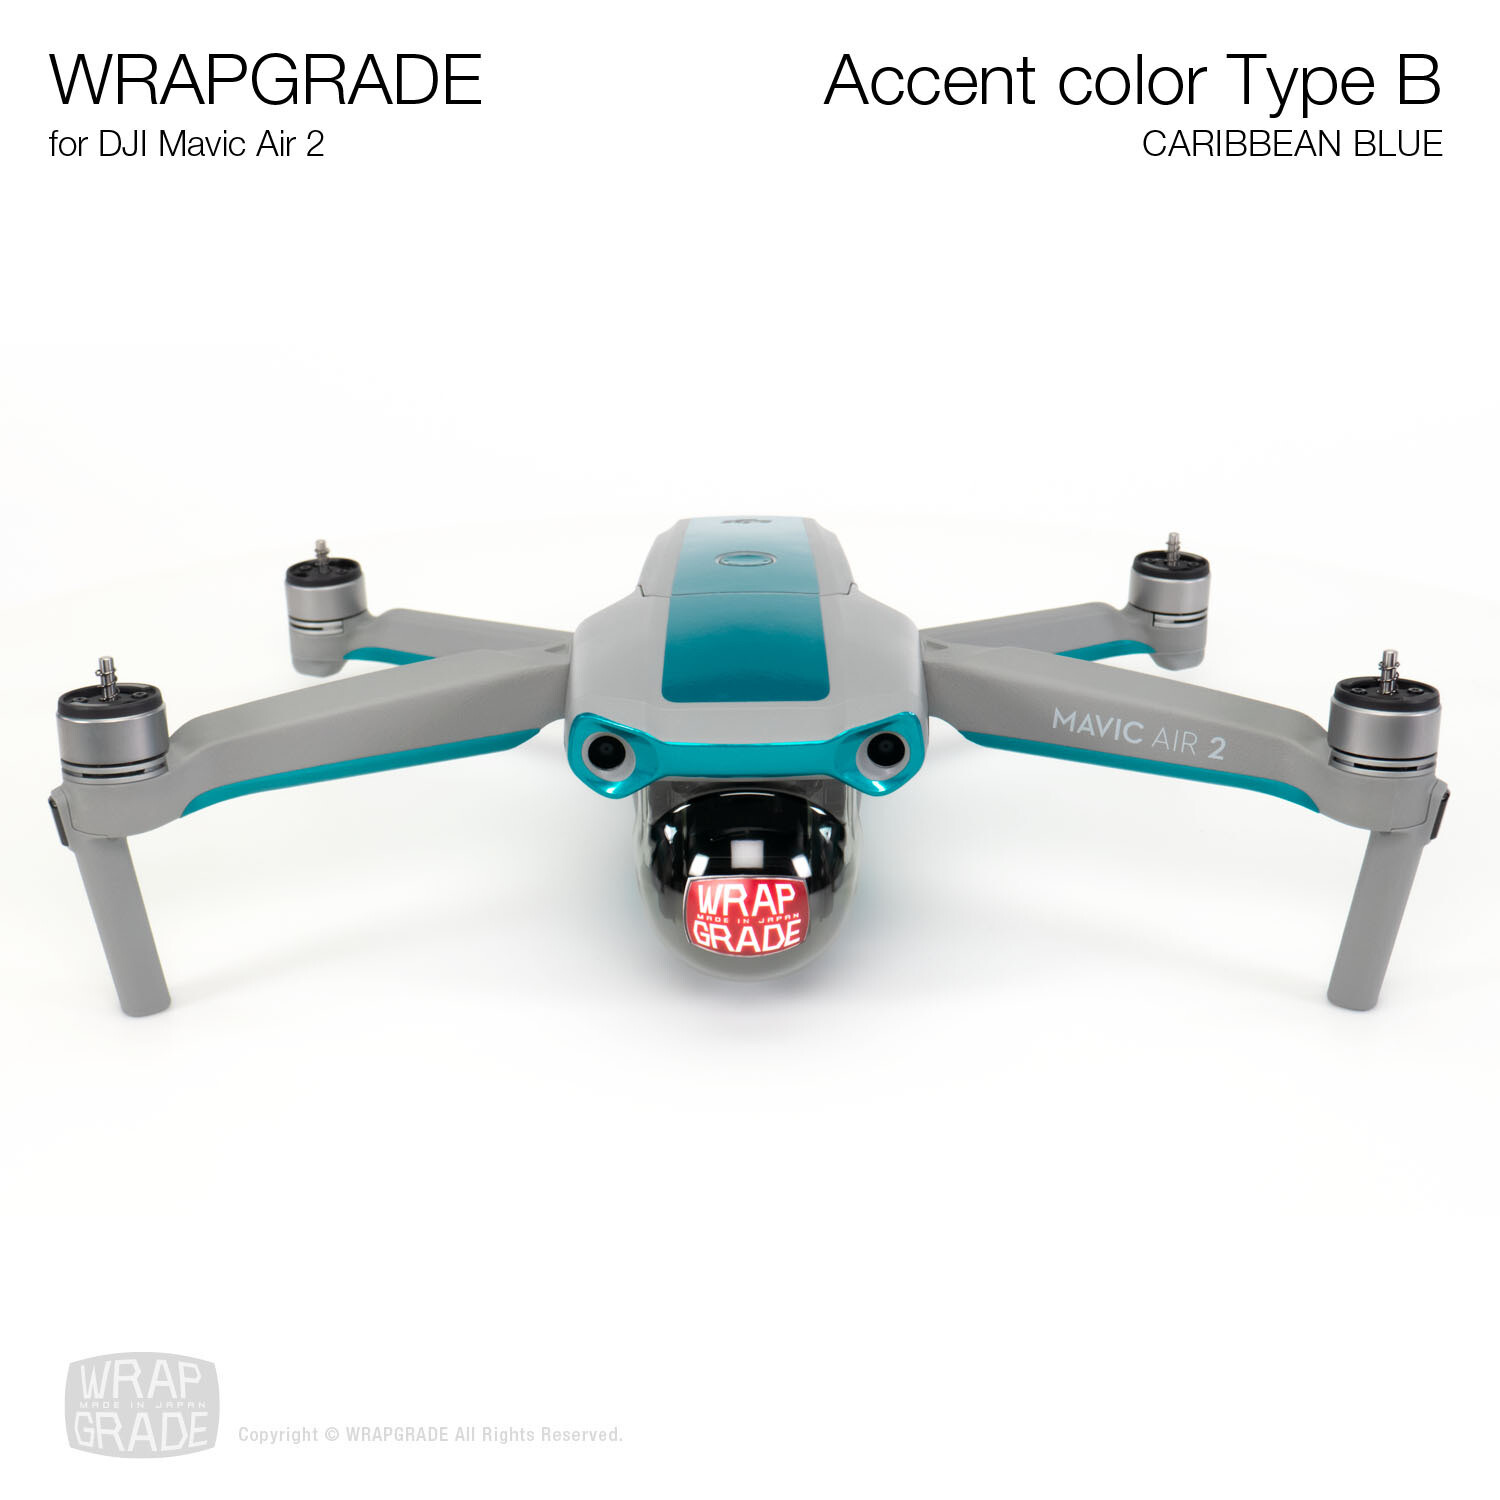 Wrapgrade for DJI Mavic Air 2 | Accent Color B (CARIBBEAN BLUE)